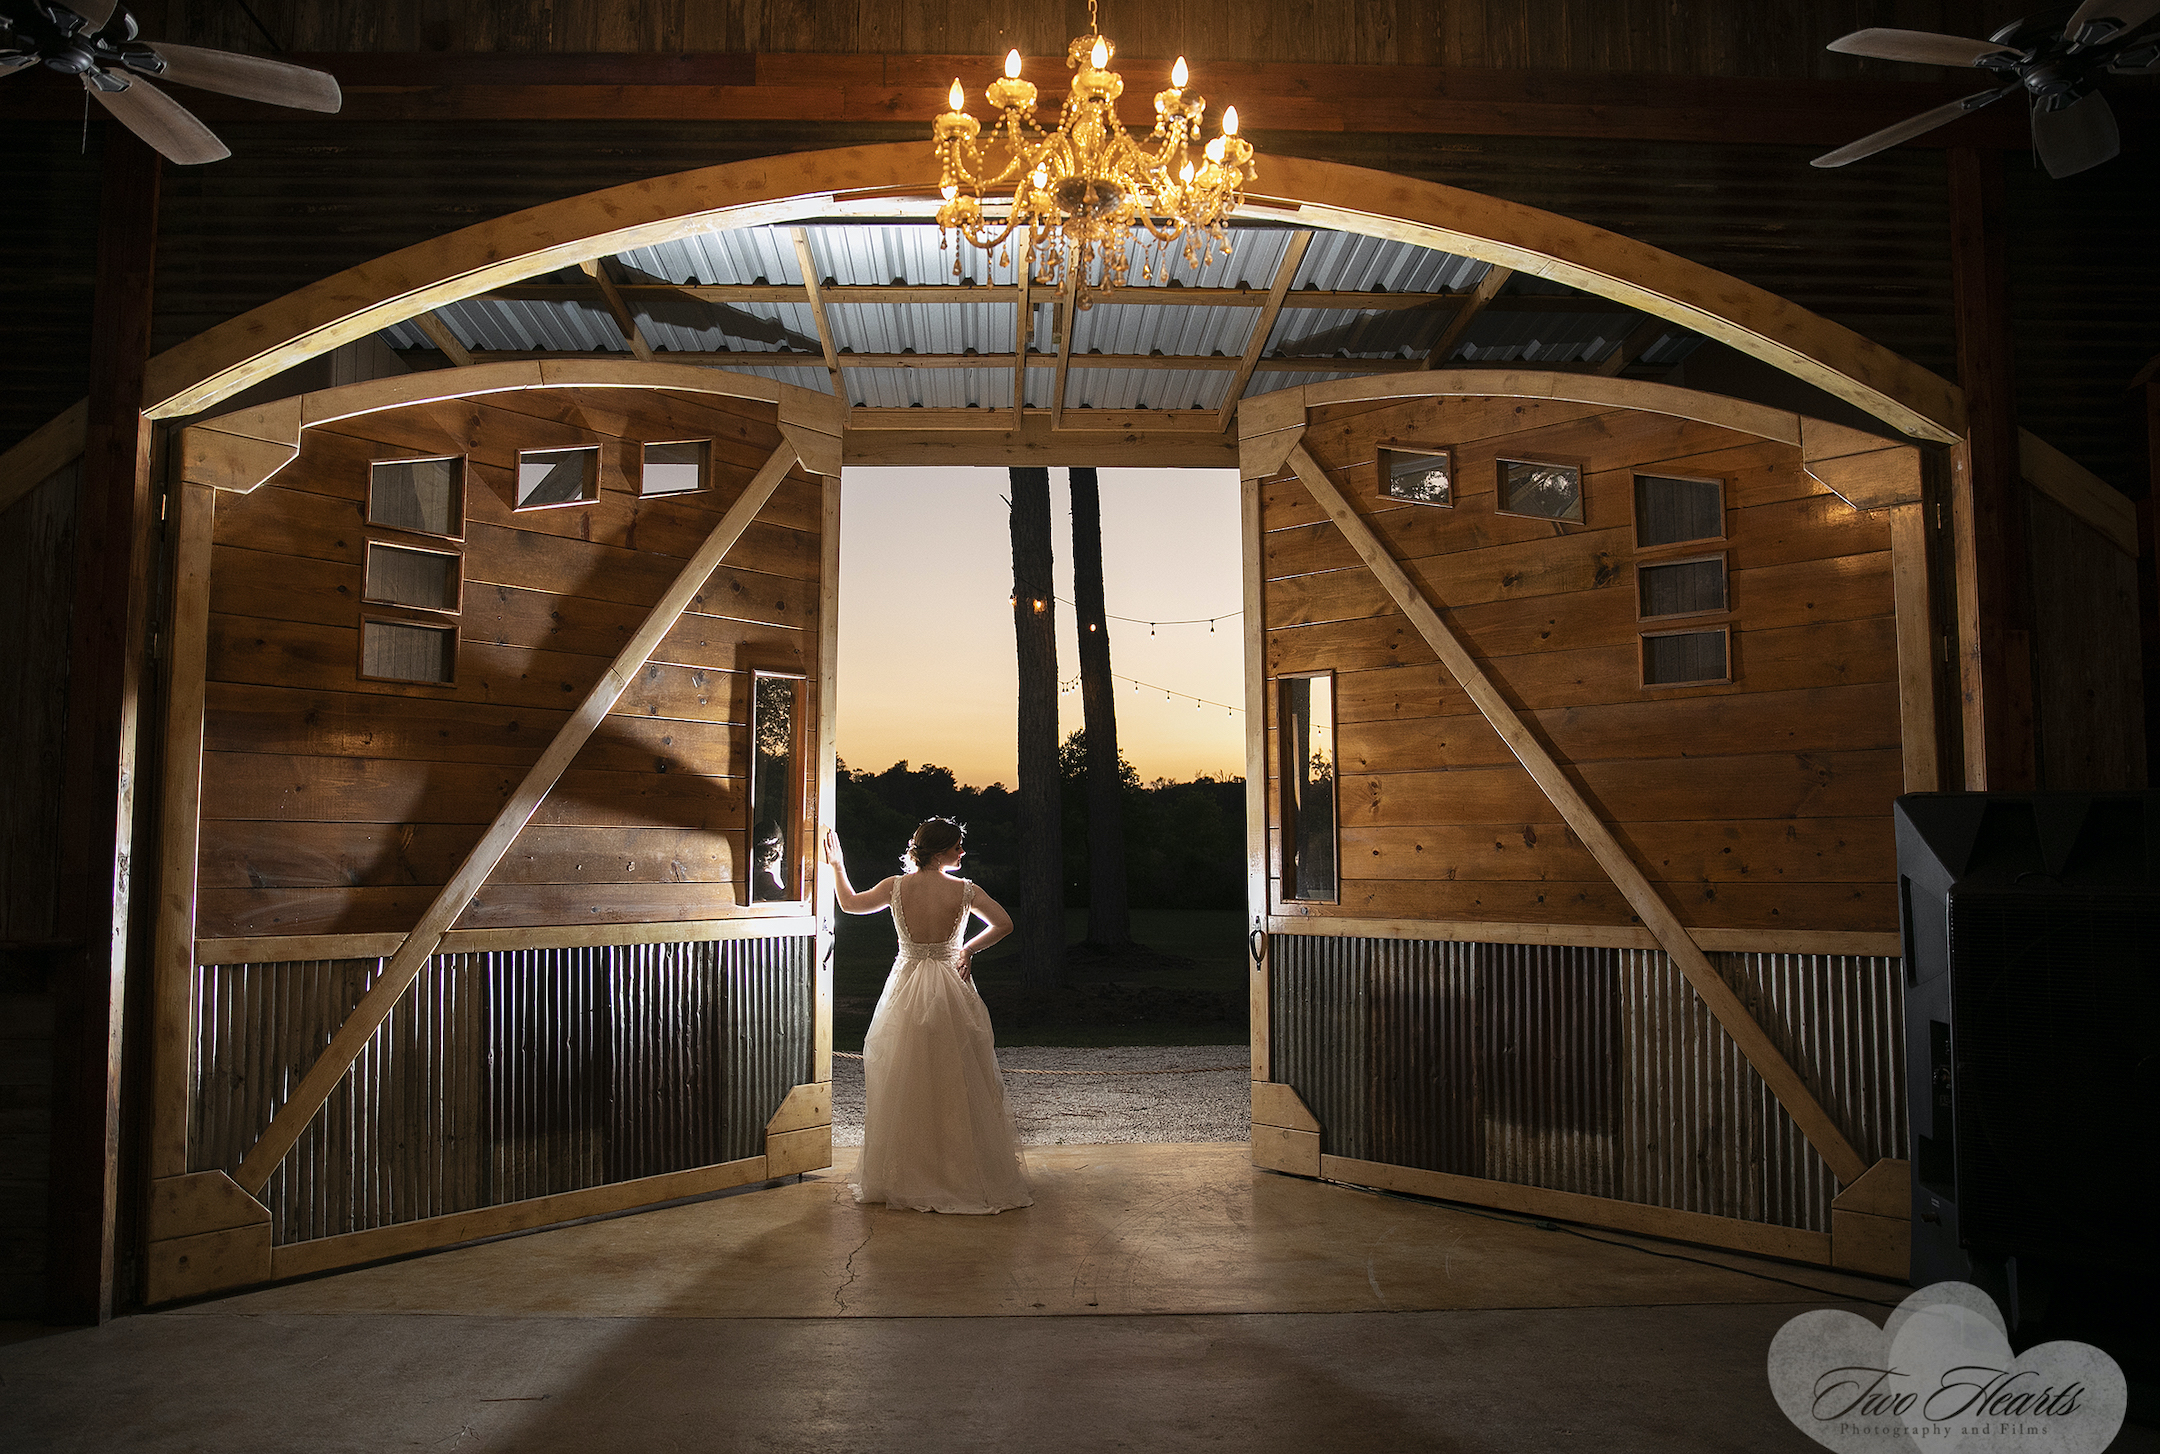 Rustic Wedding Venue - The Barn at Four Pines Ranch